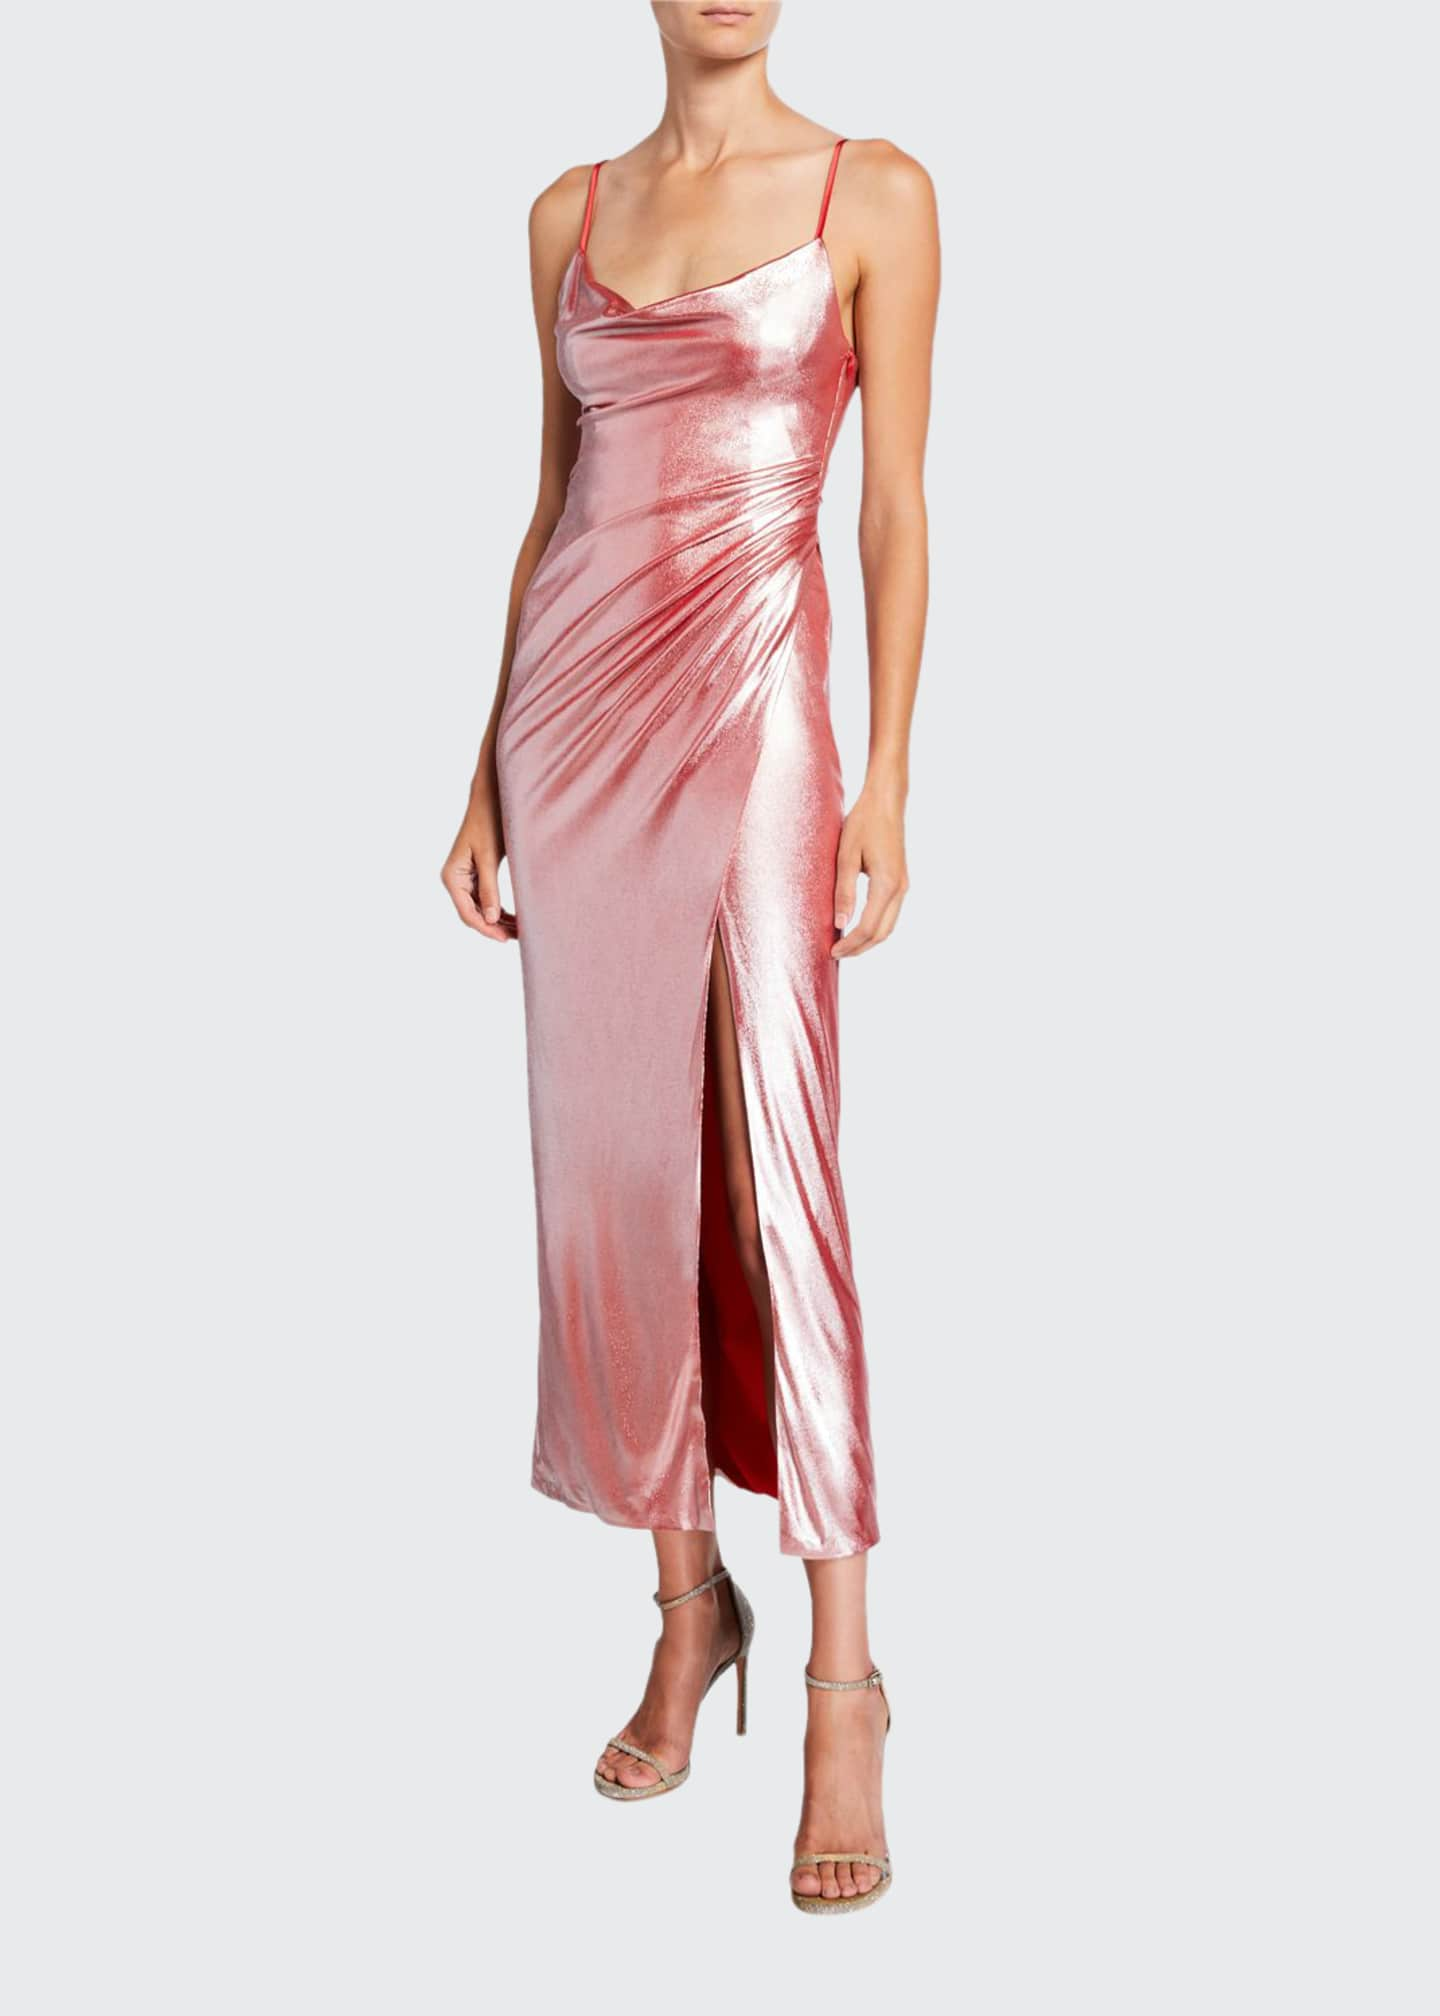 Galvan Metallic Jersey Slip Dress